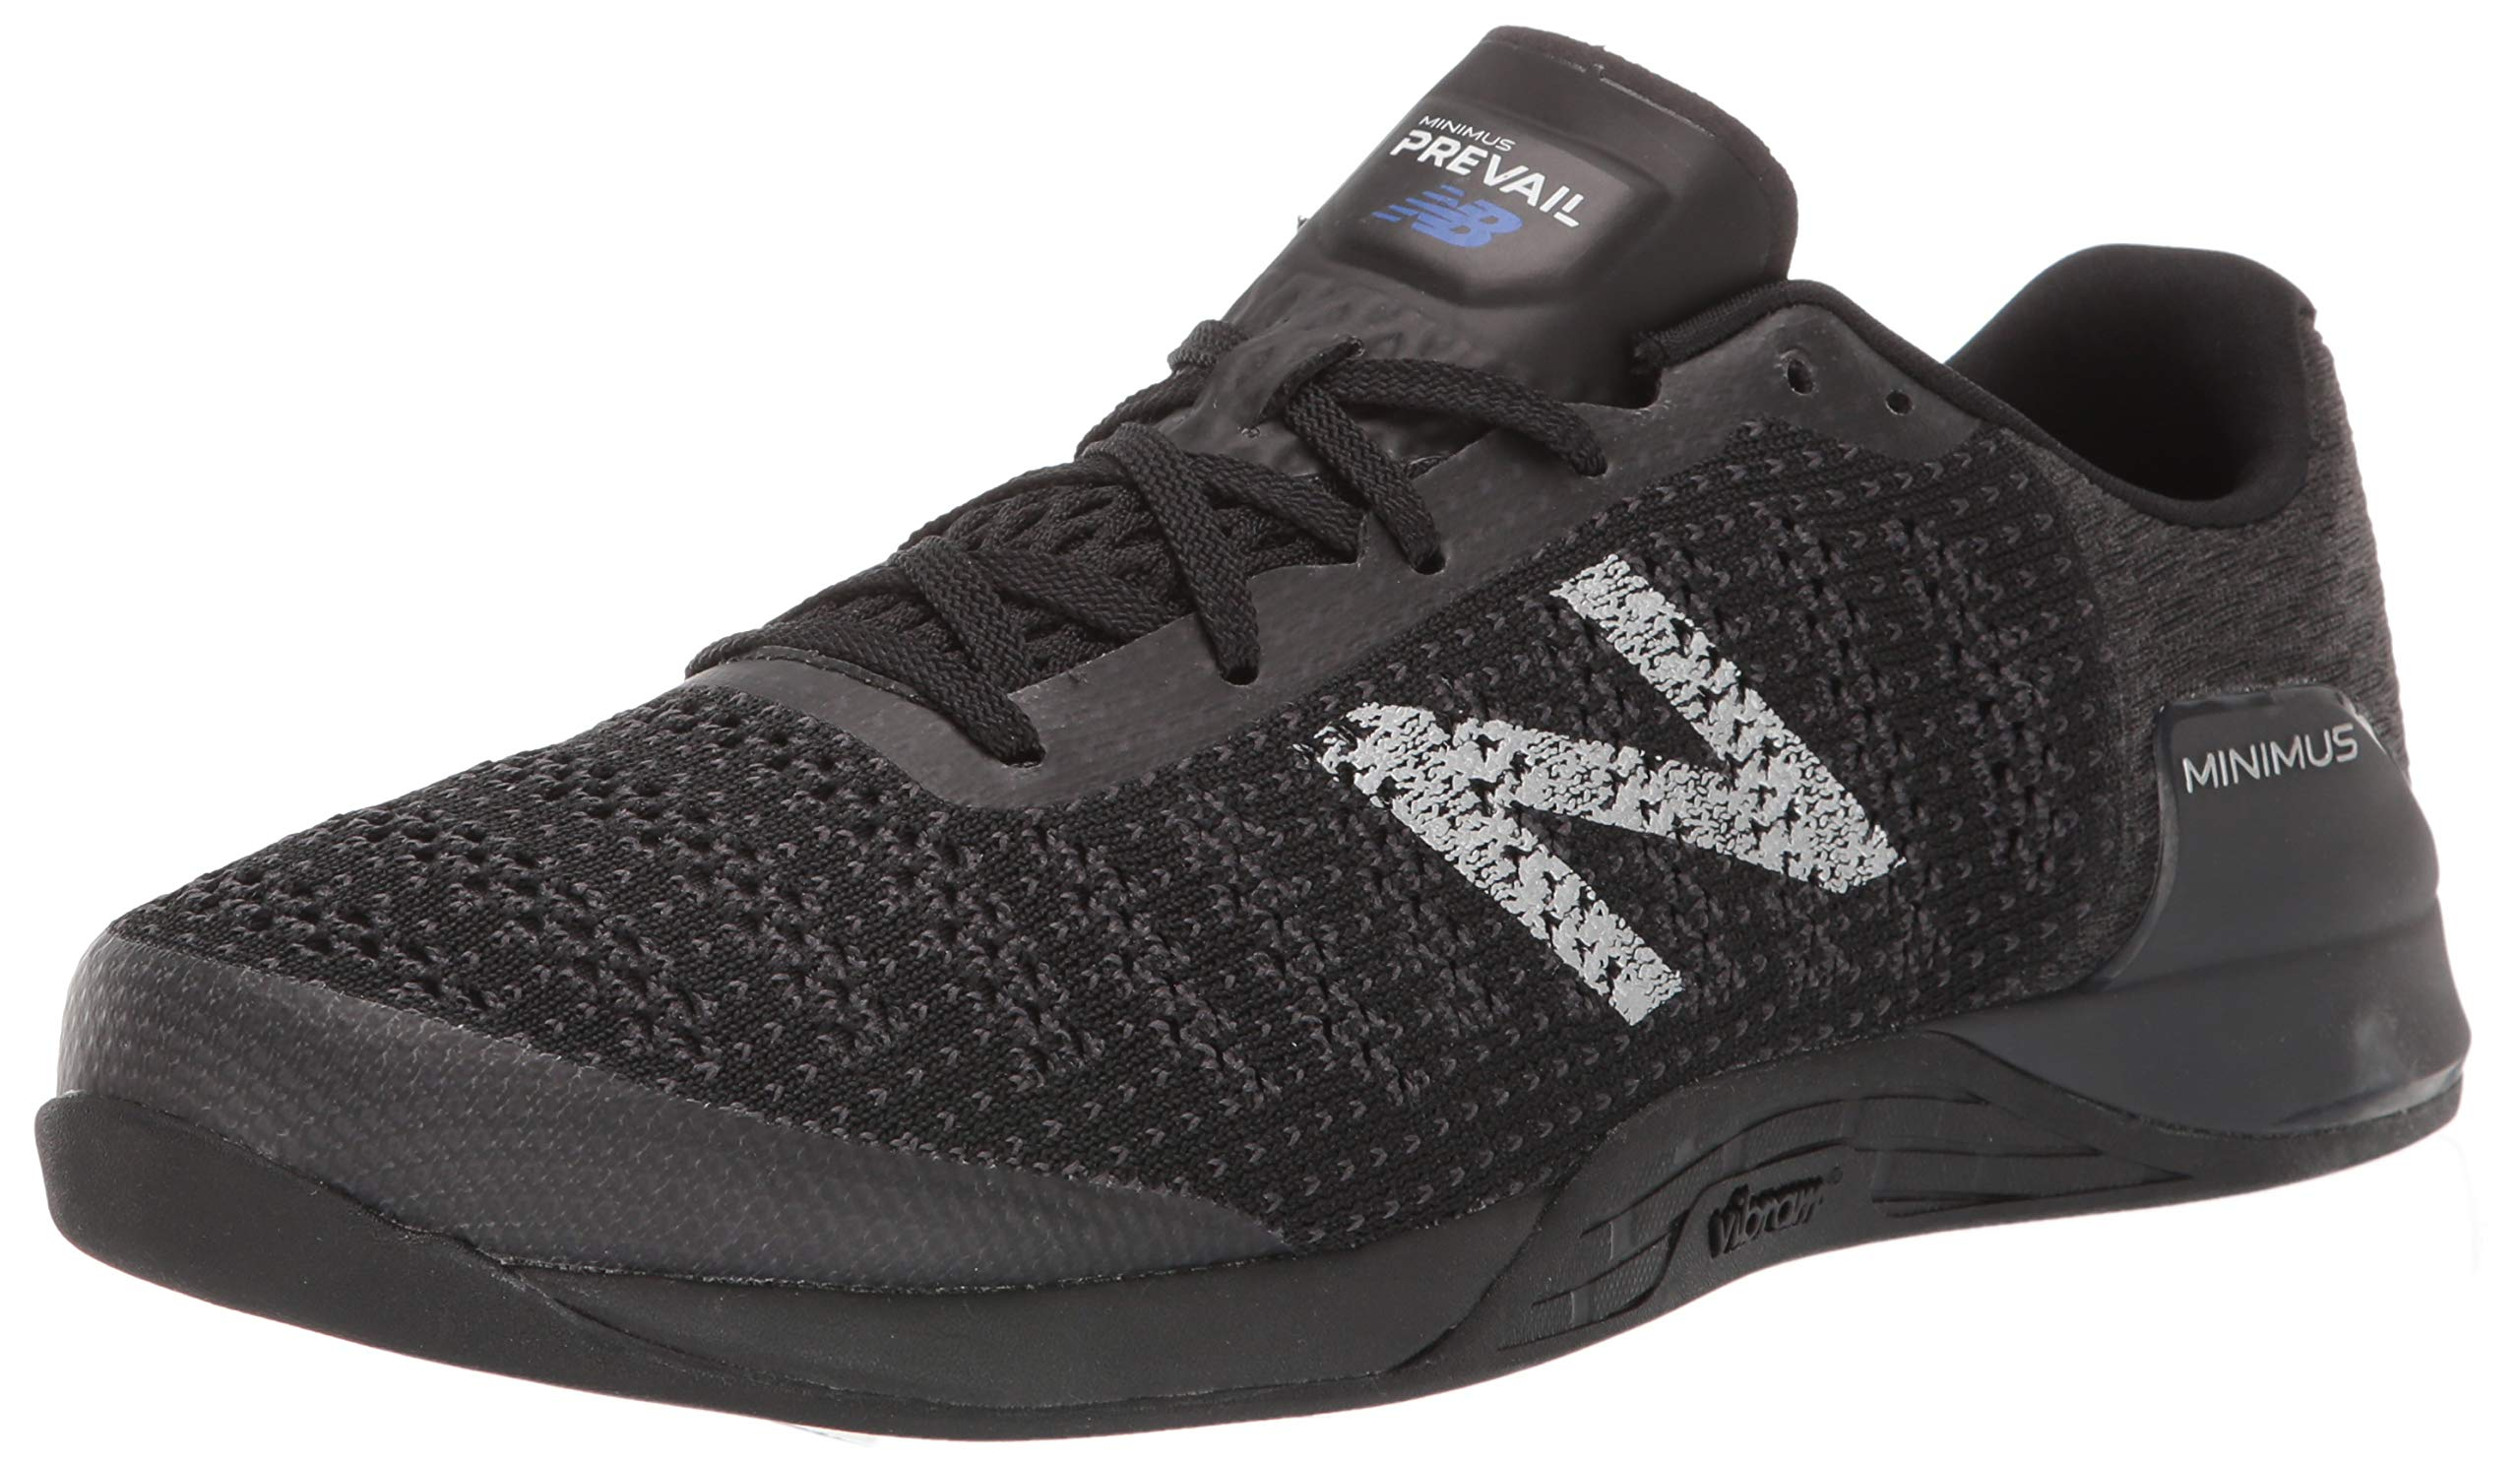 New Balance Men's Prevail V1 Minimus Track and Field Shoe, Black/Magnet, 10 M US by New Balance